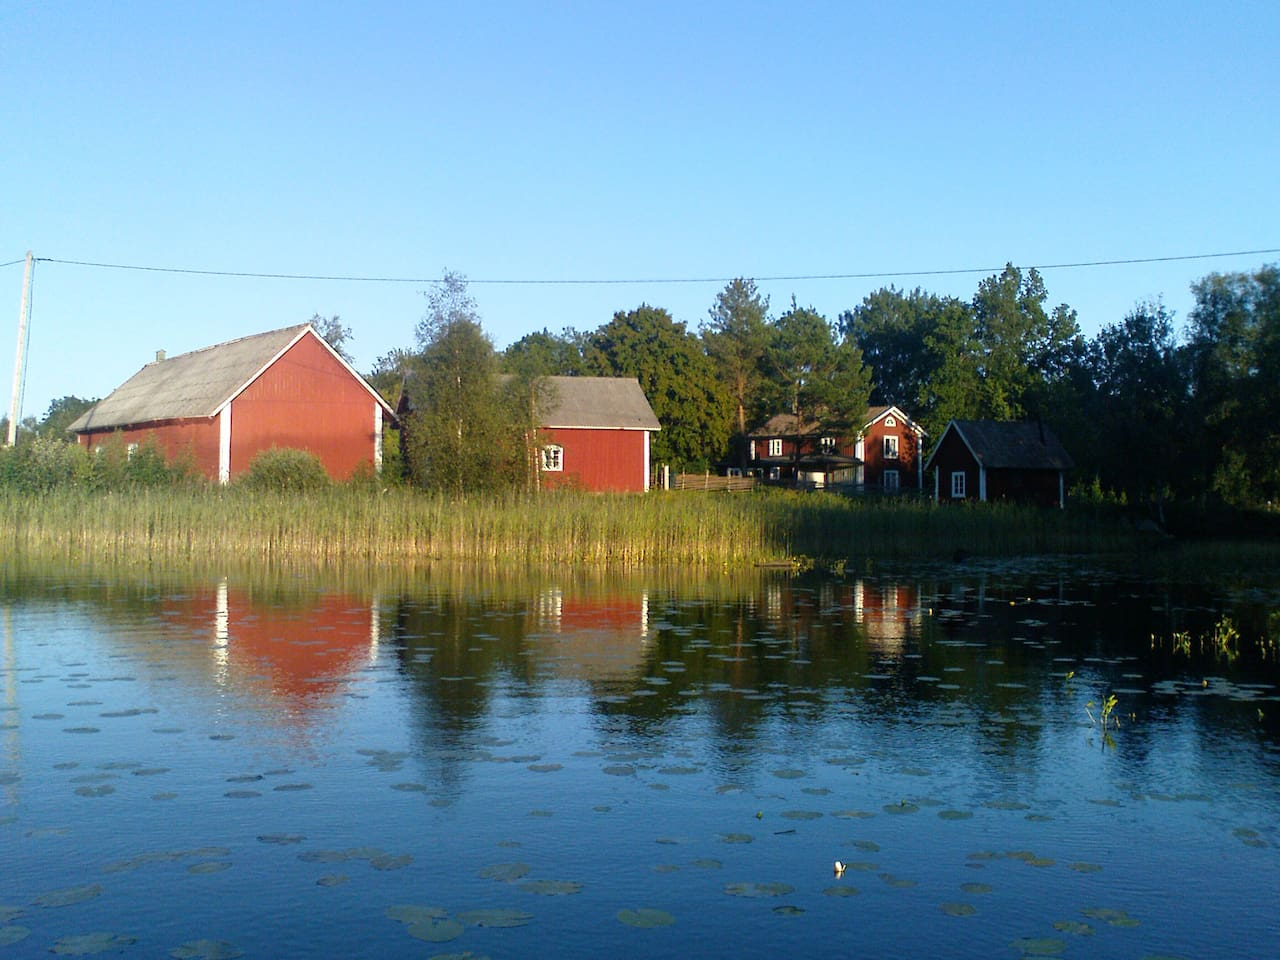 The lake is right next to the house offering both fishing and boating activities.